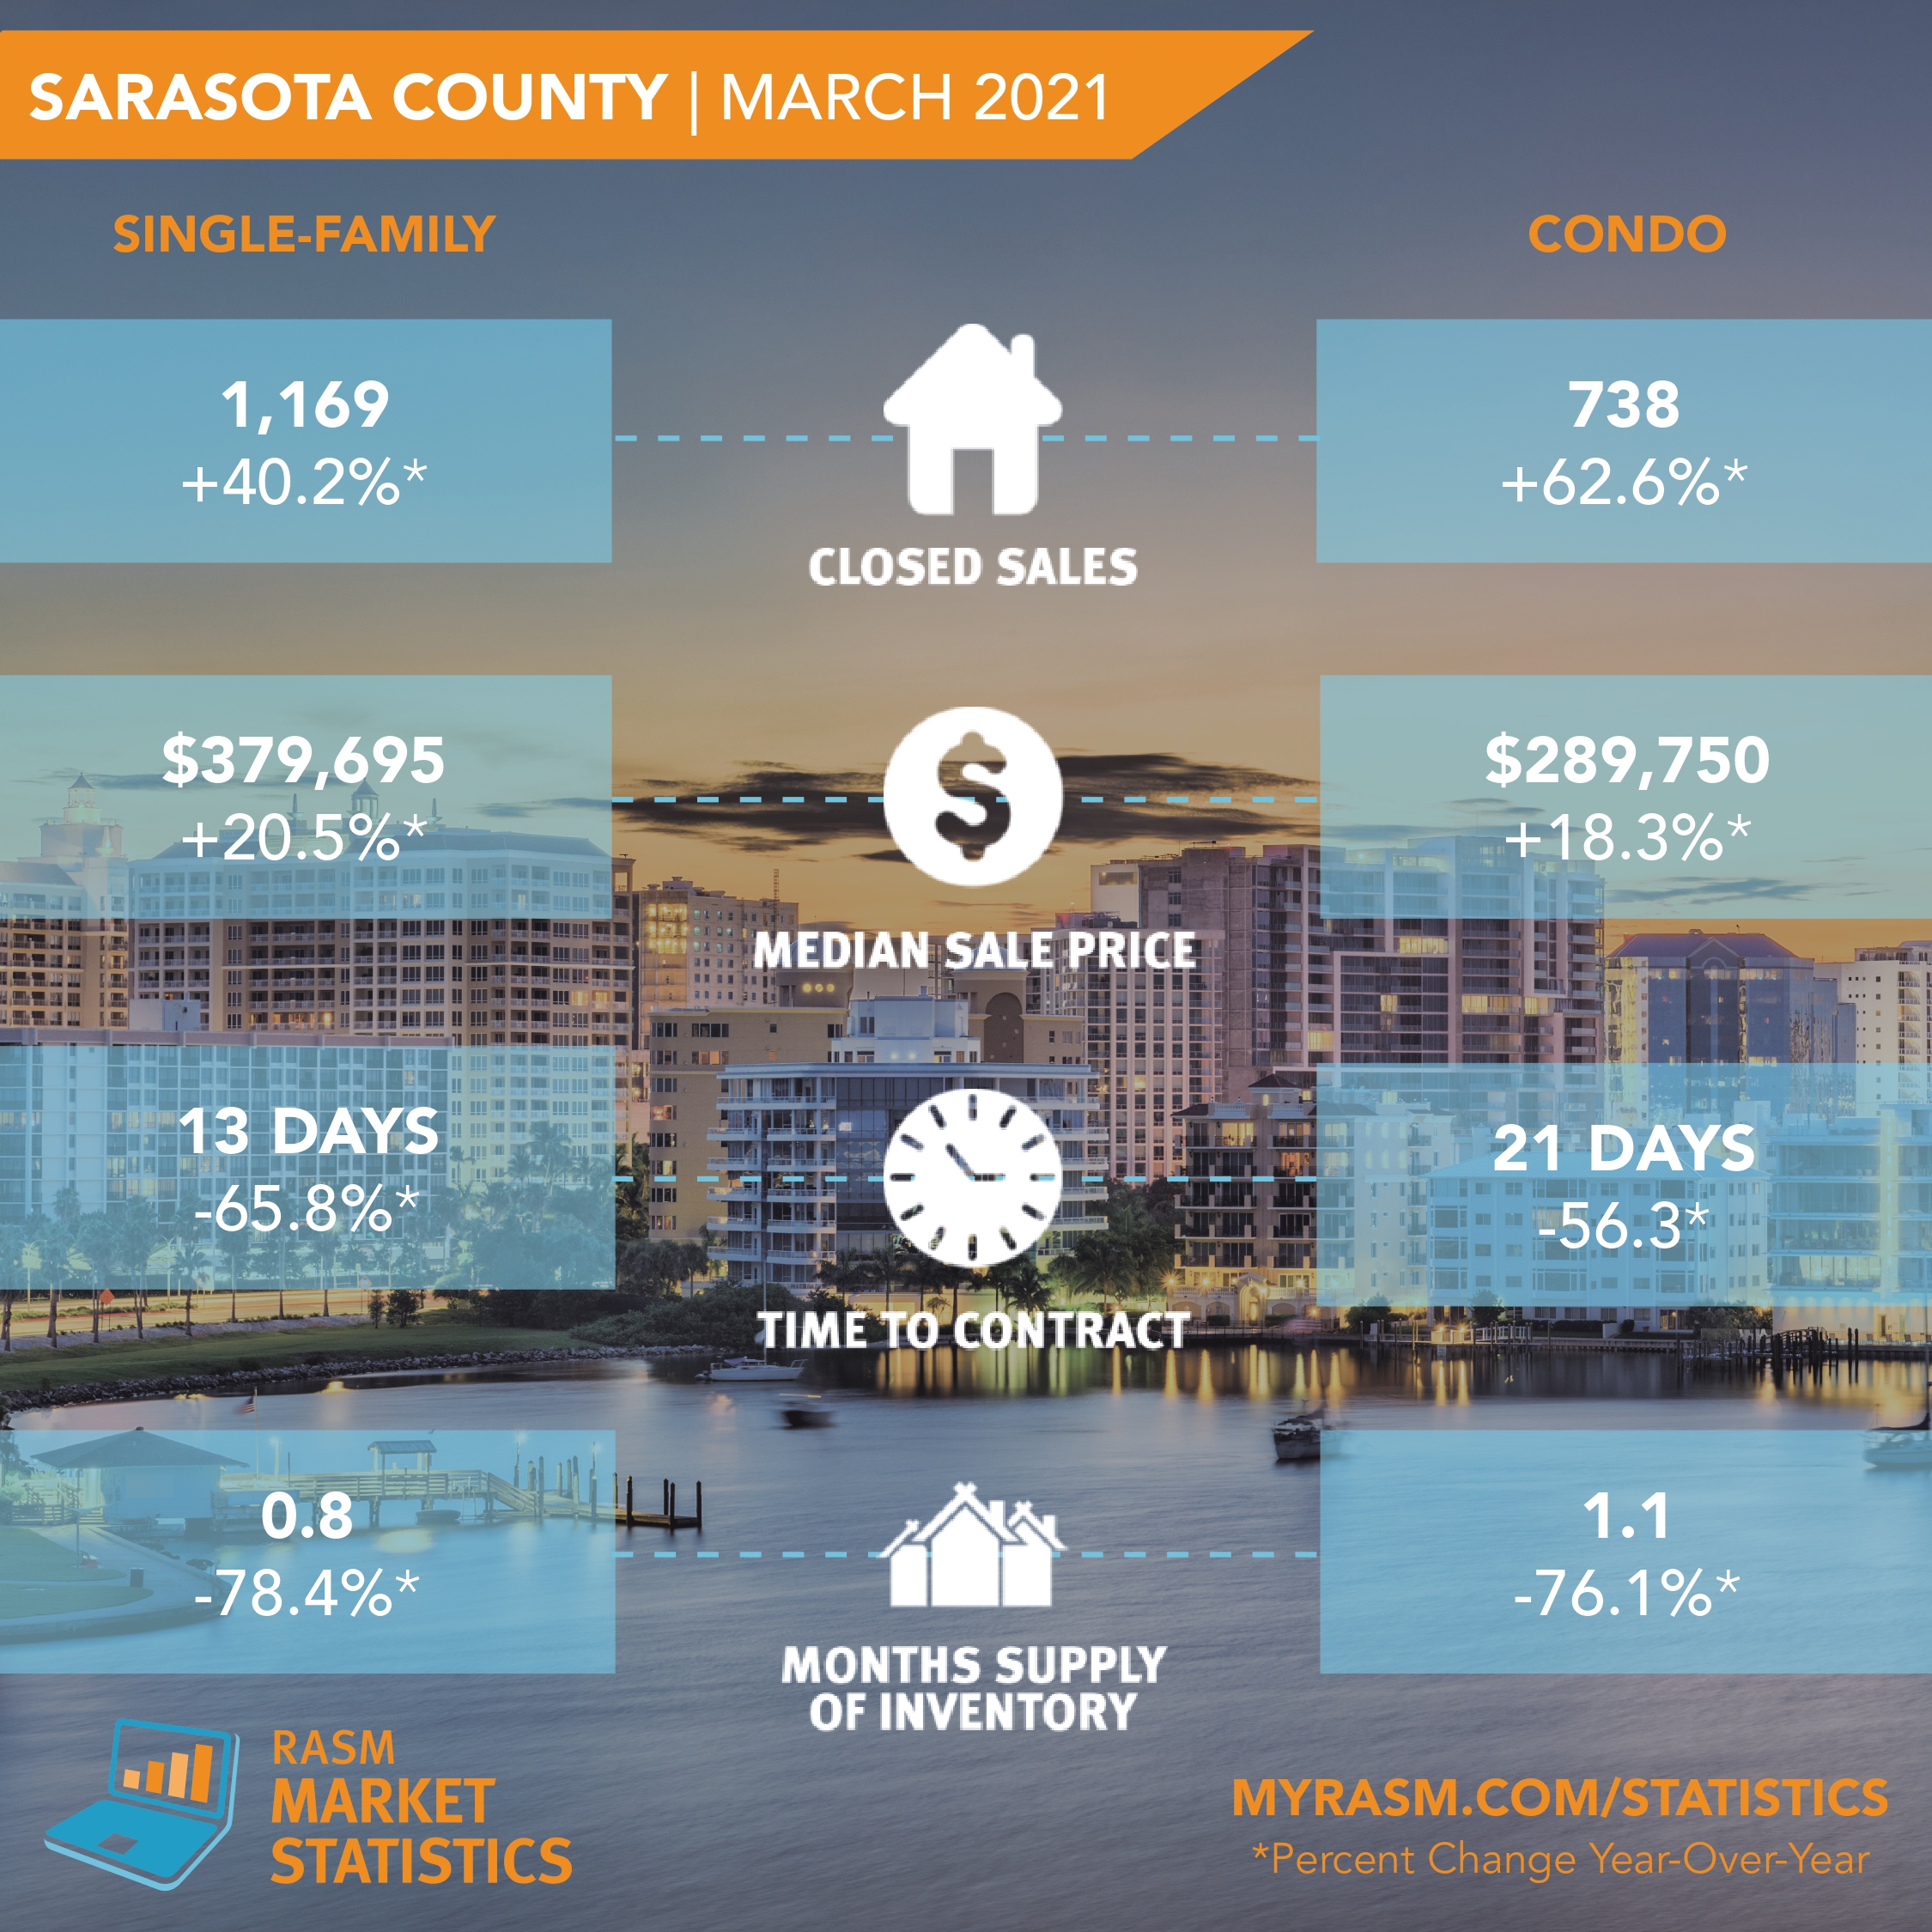 Stats-Graphic-Sarasota March_page-0001.jpg